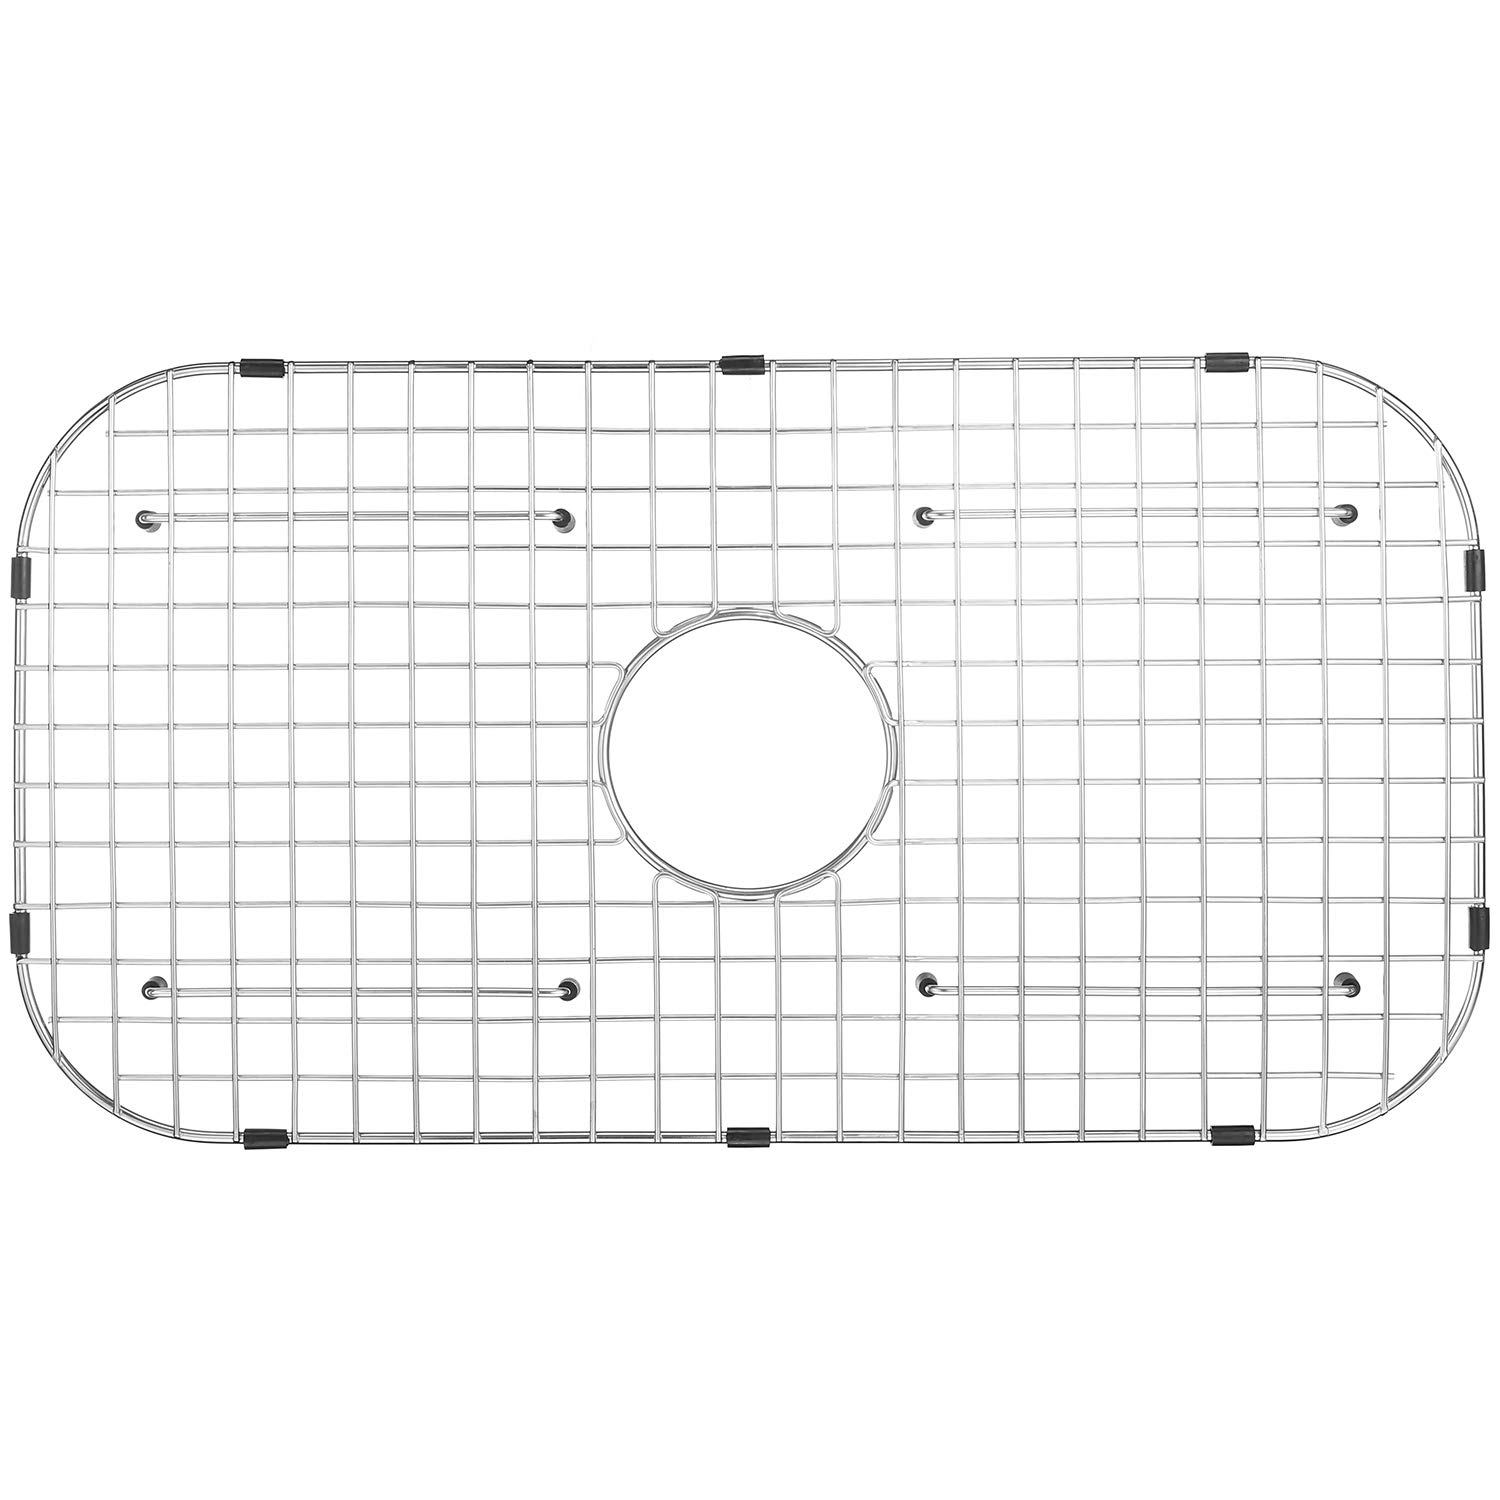 Serene Valley Sink Grid NDG6016, Fits Drawn sinks Bowl Size 28'' x 16'', Centered Drain with Corner Radius 3 1/2'', dim 26'' x 14 1/8''